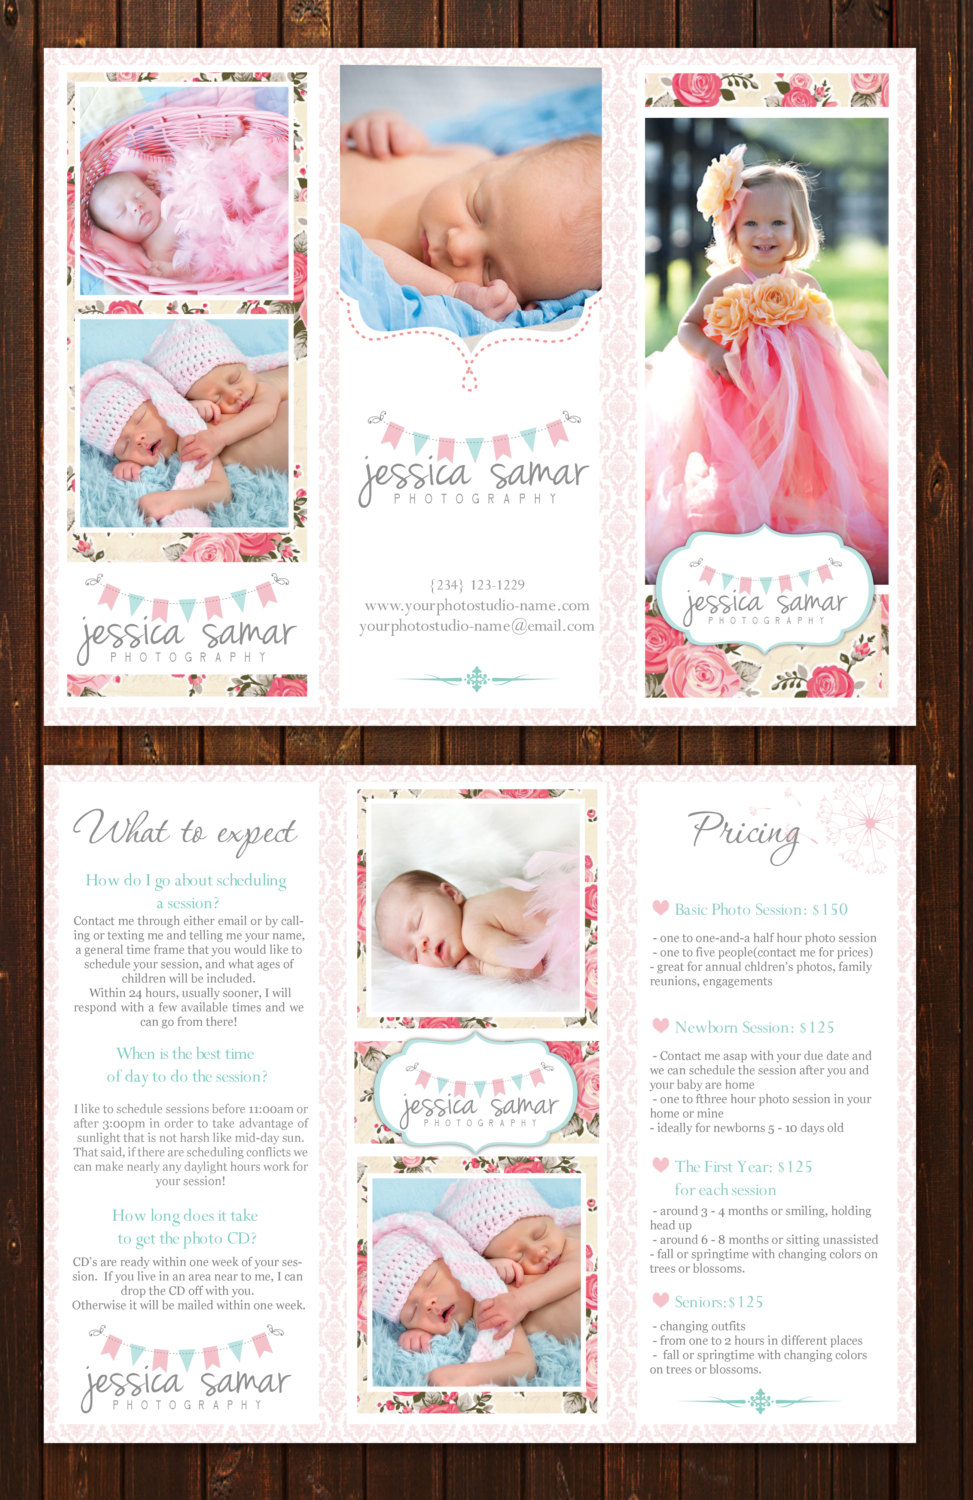 editable tri fold brochure with logo included